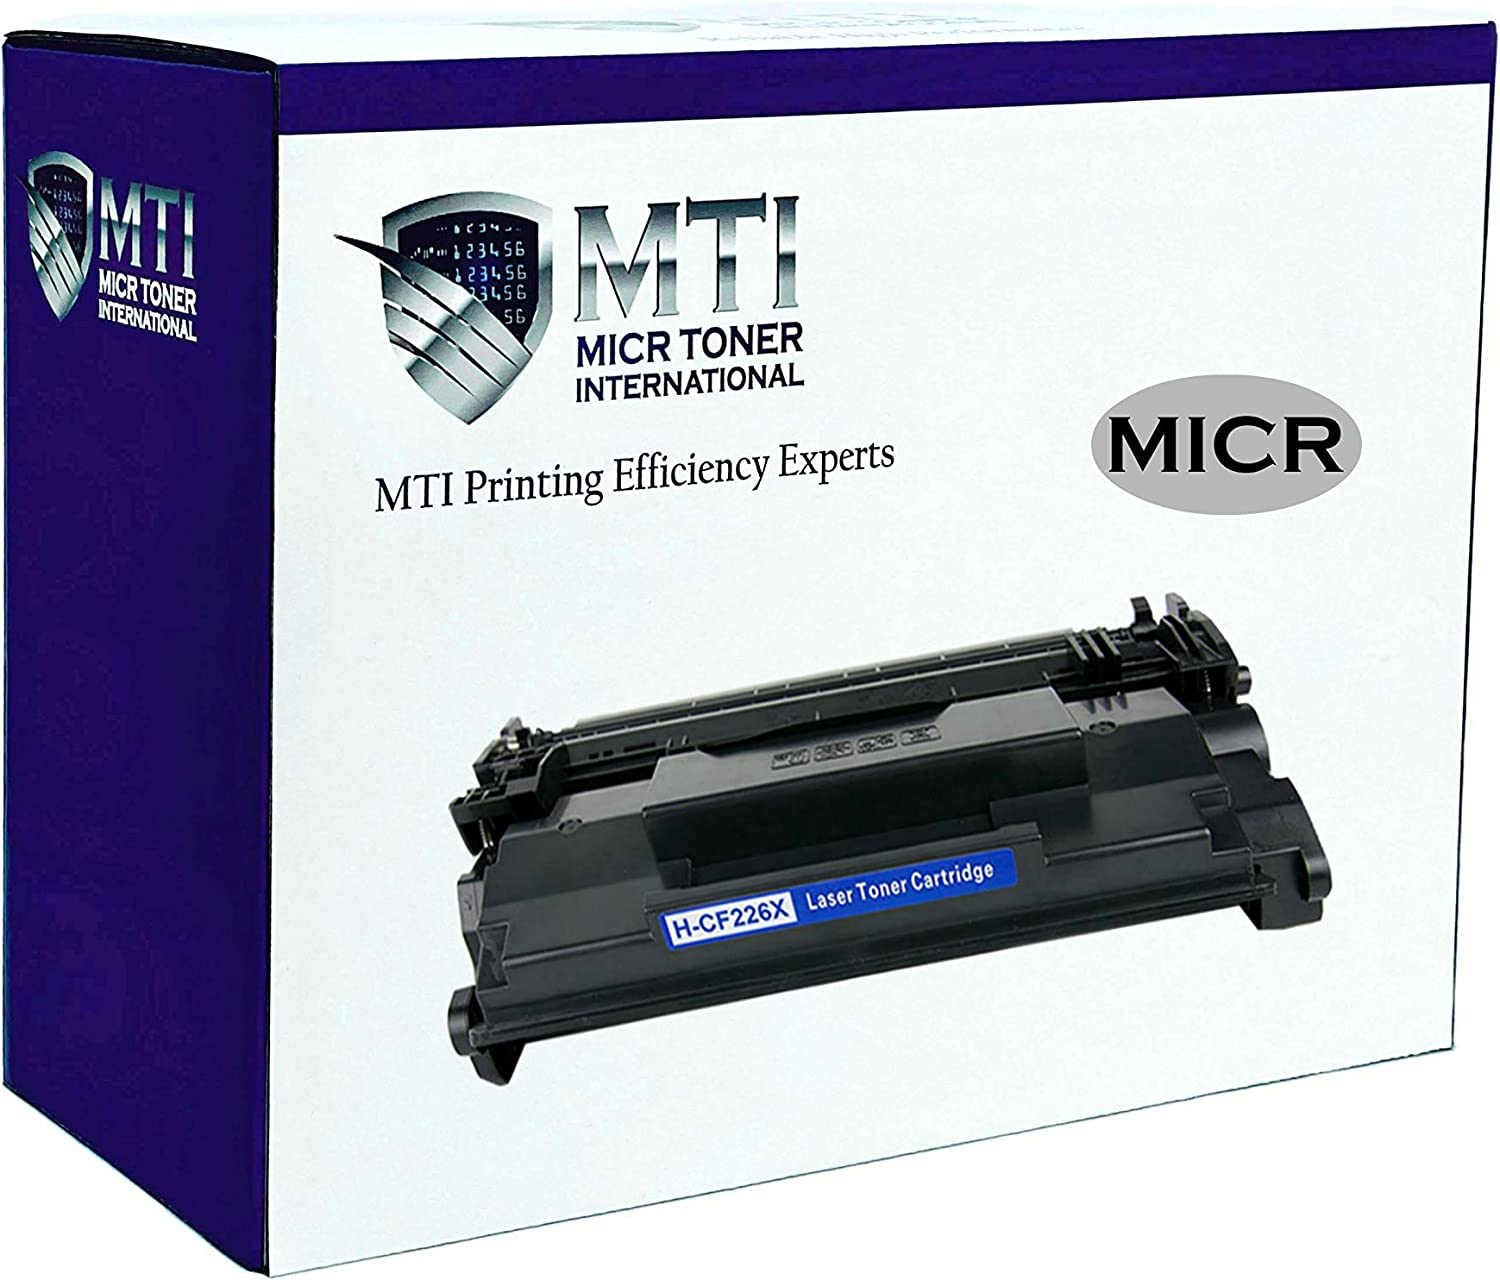 MICR Toner International Compatible High Yield MICR Toner Cartridge Replacement for HP 26X CF226X LaserJet Pro M402 M426 MFP